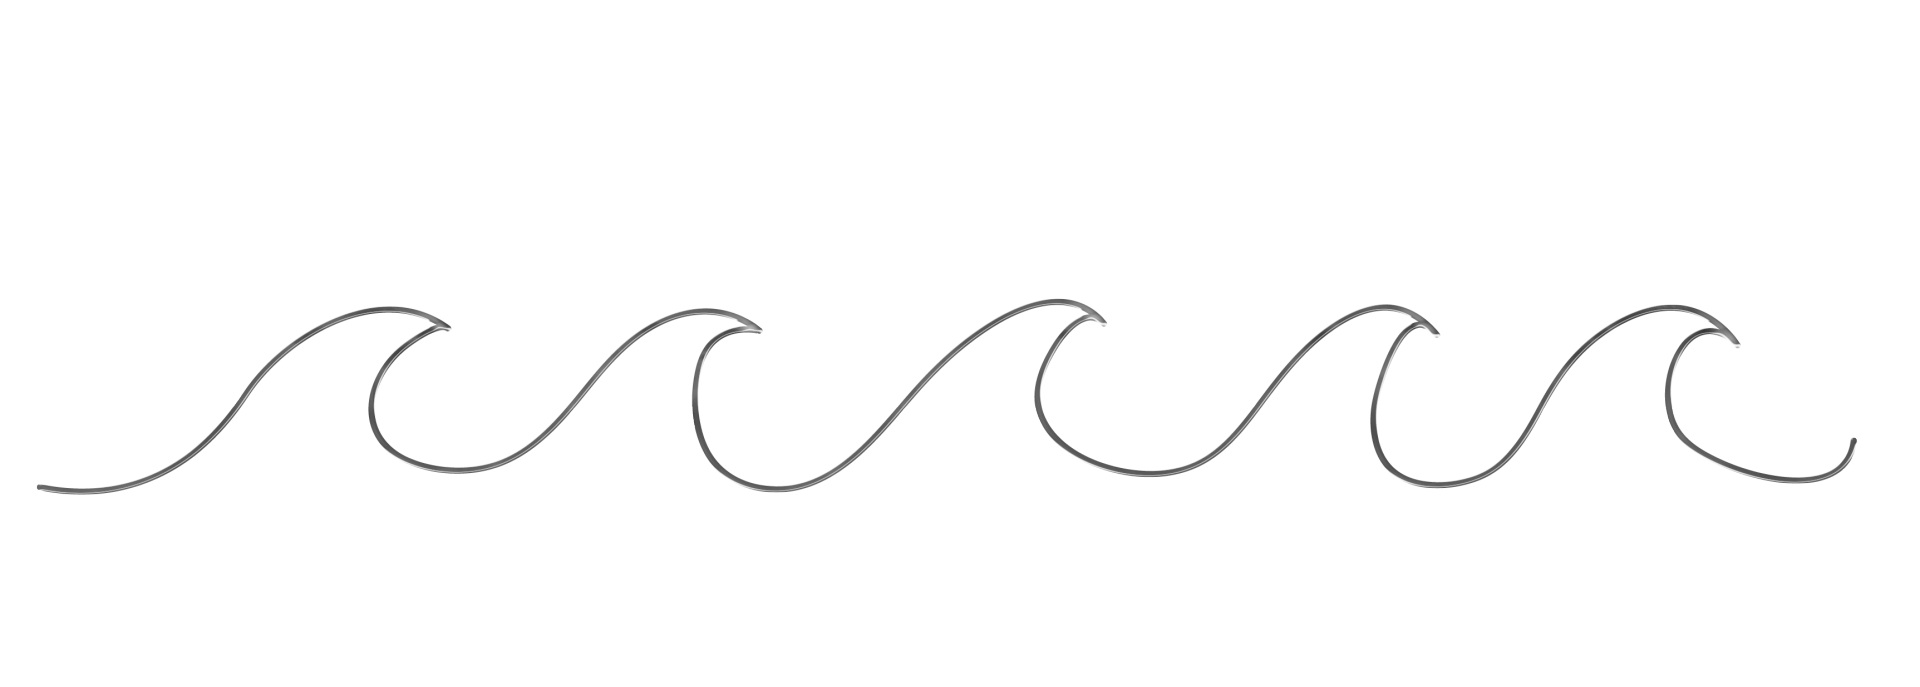 Waves clipart black and white 4 » Clipart Station.